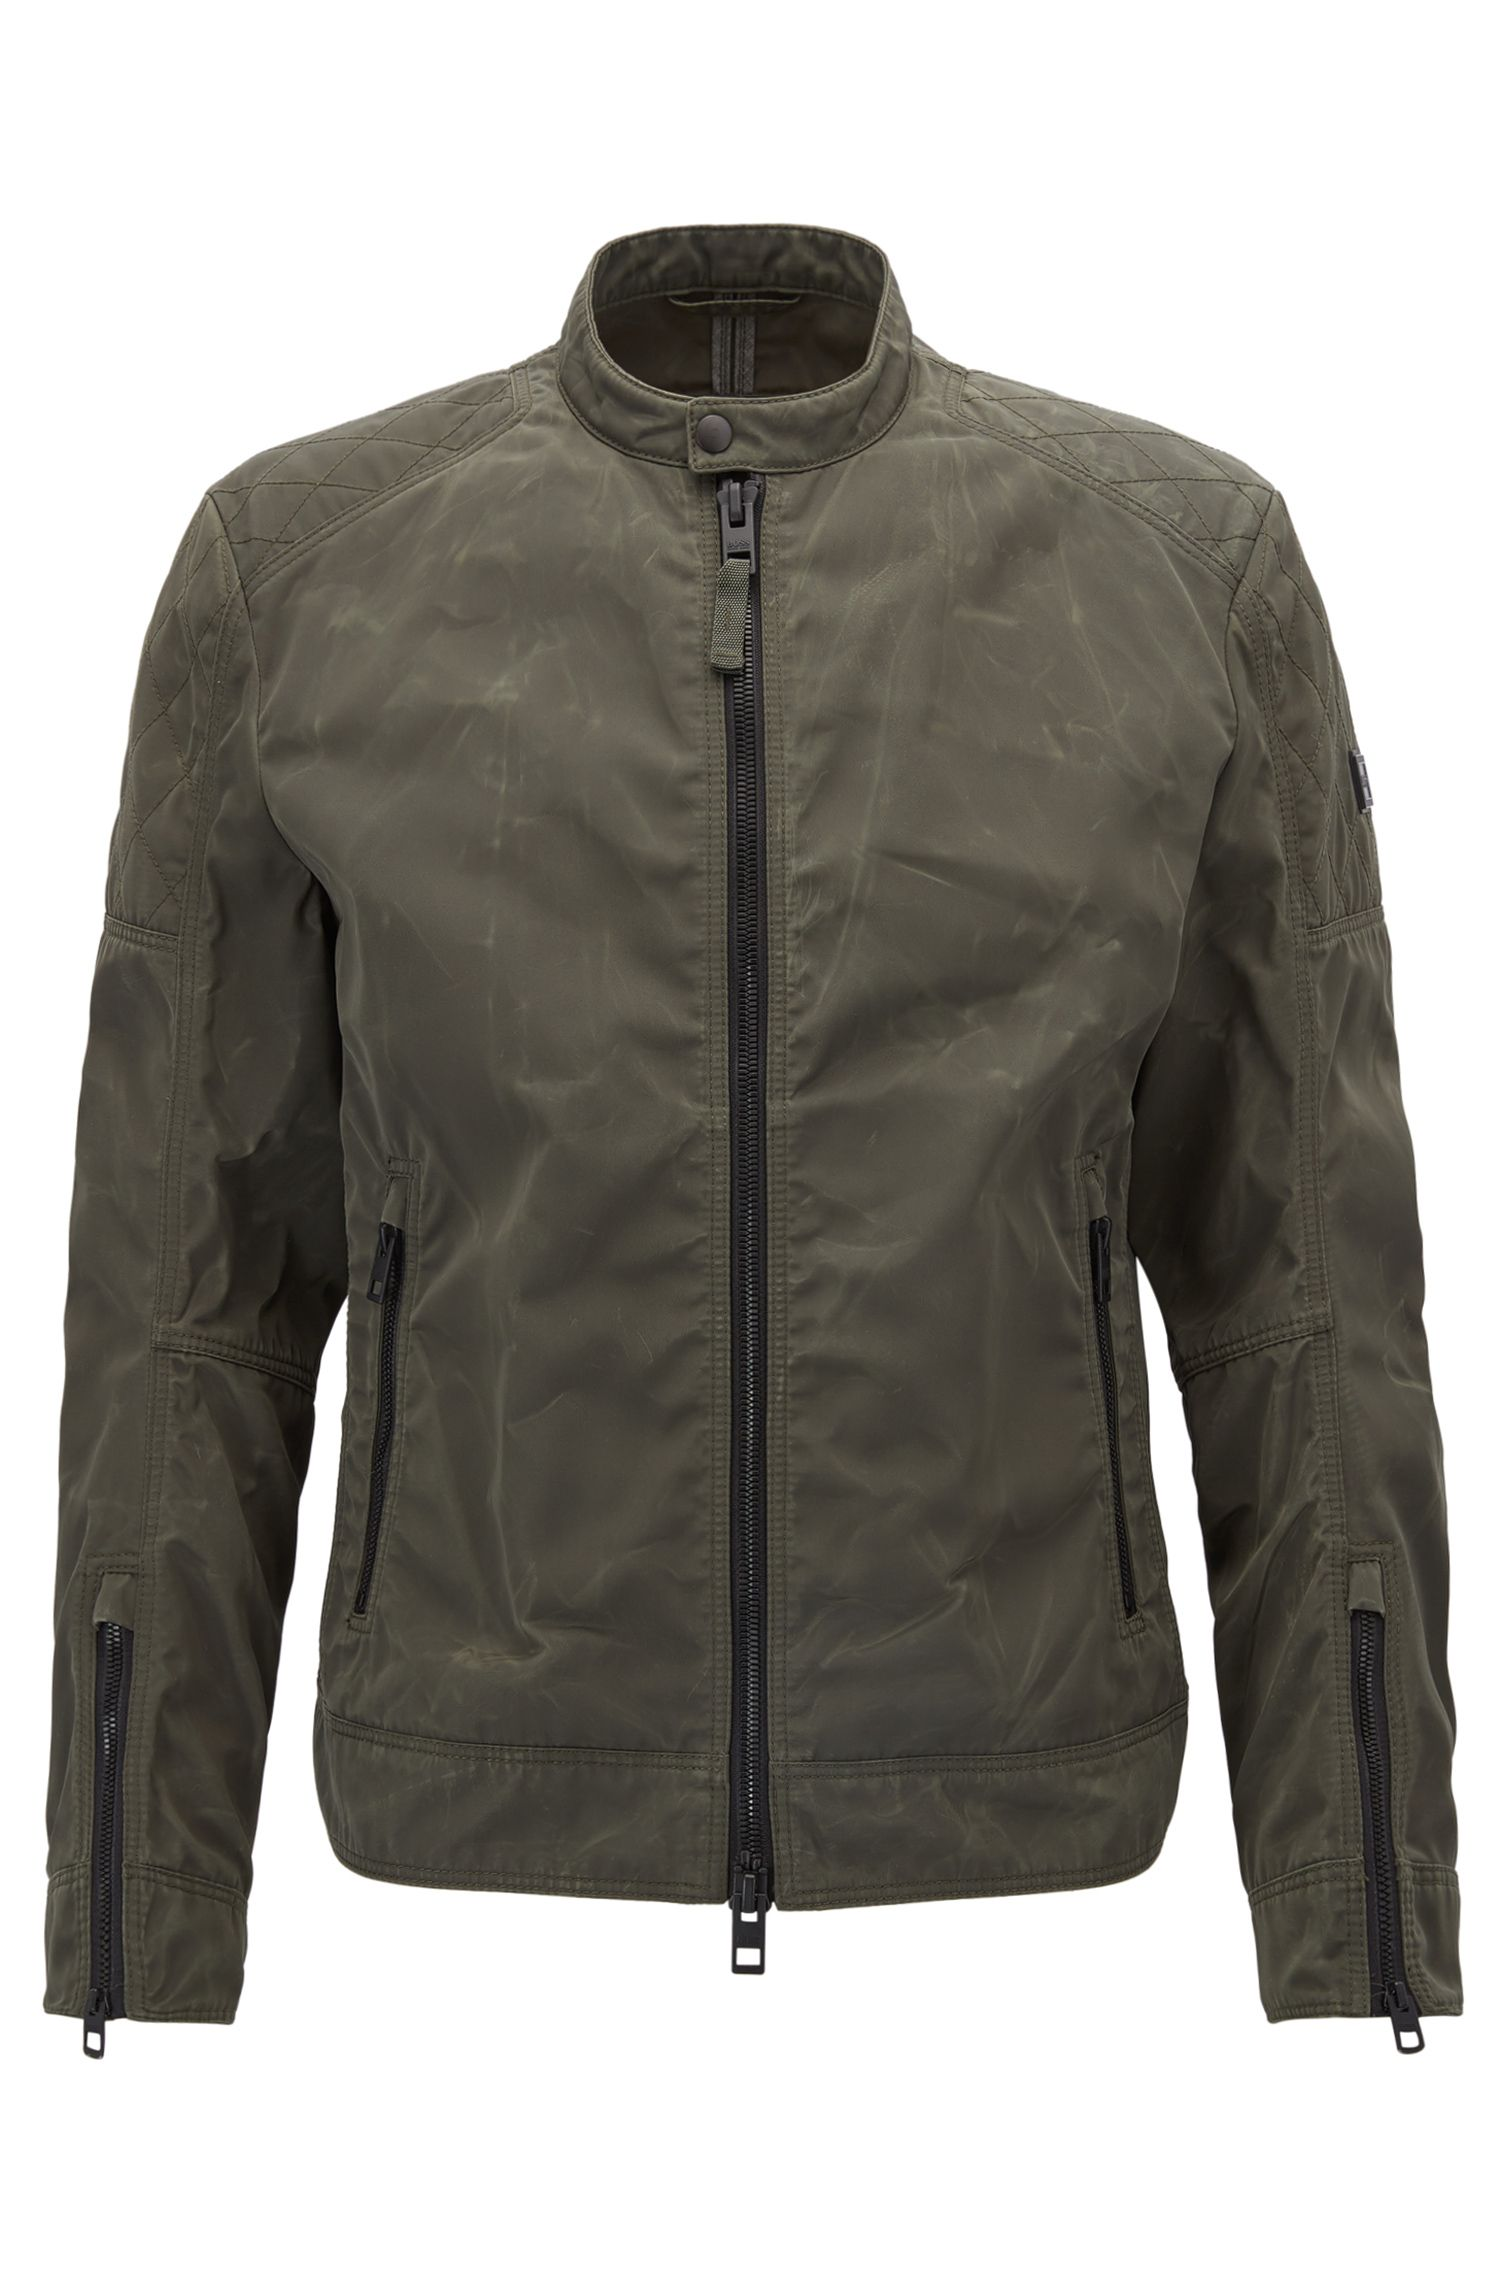 Slim-fit bikerjas in een gewaxte twill met used-finish